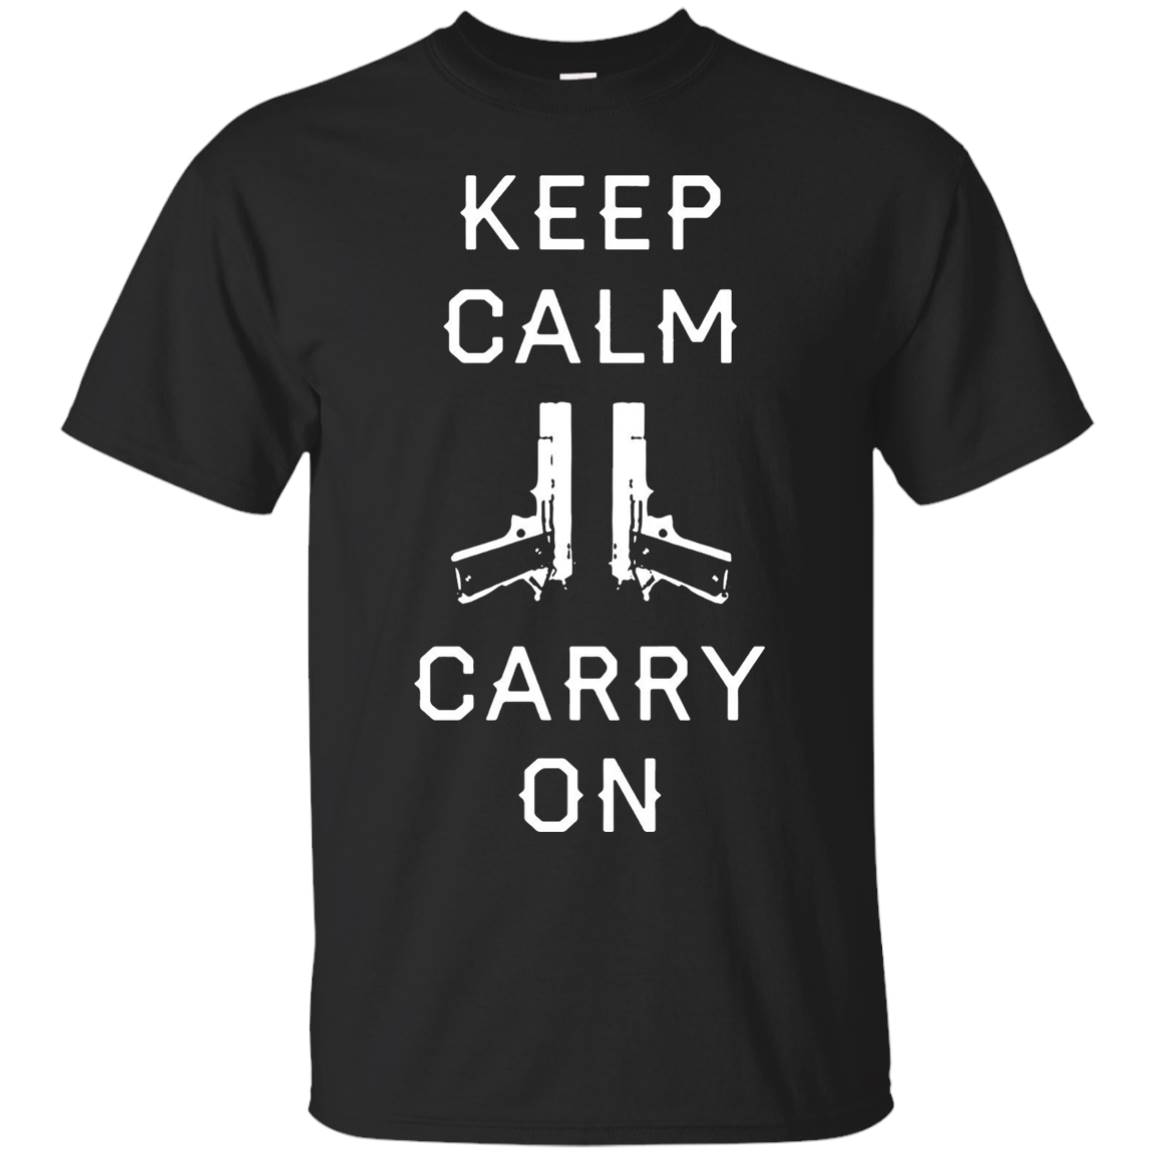 Represent Keep Calm and carry on cool guns T shirt 2016